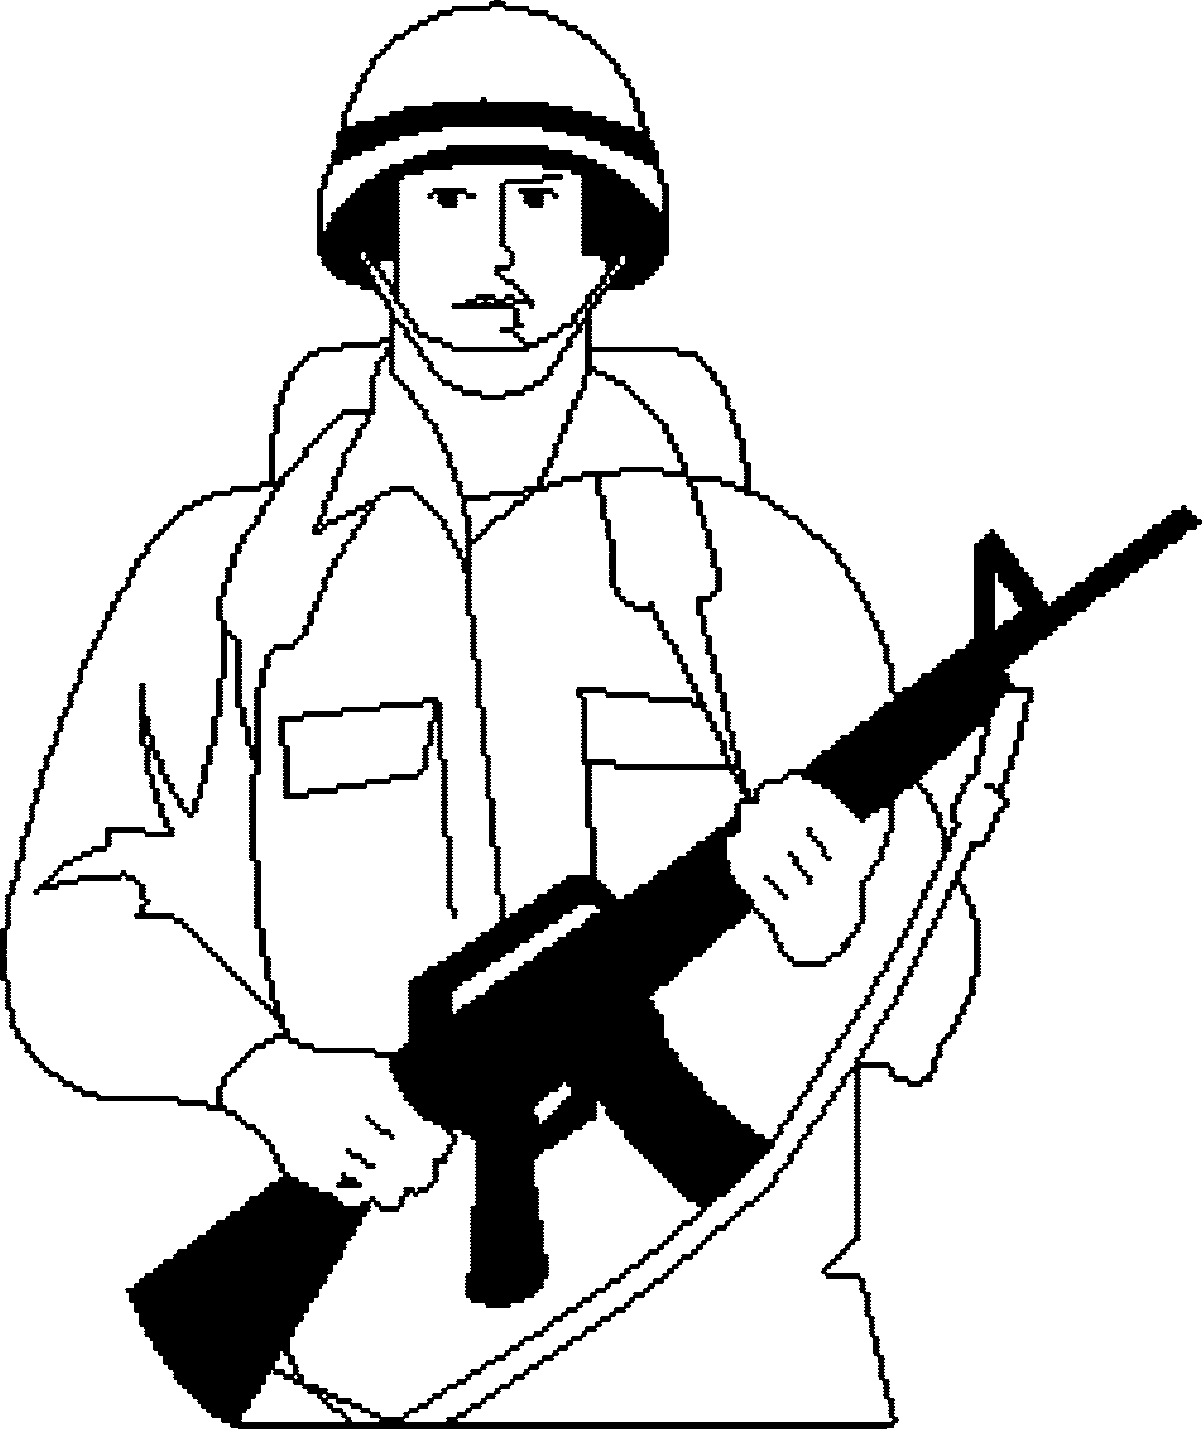 Soldier Coloring Pages - sol R Pixel Coloring Page